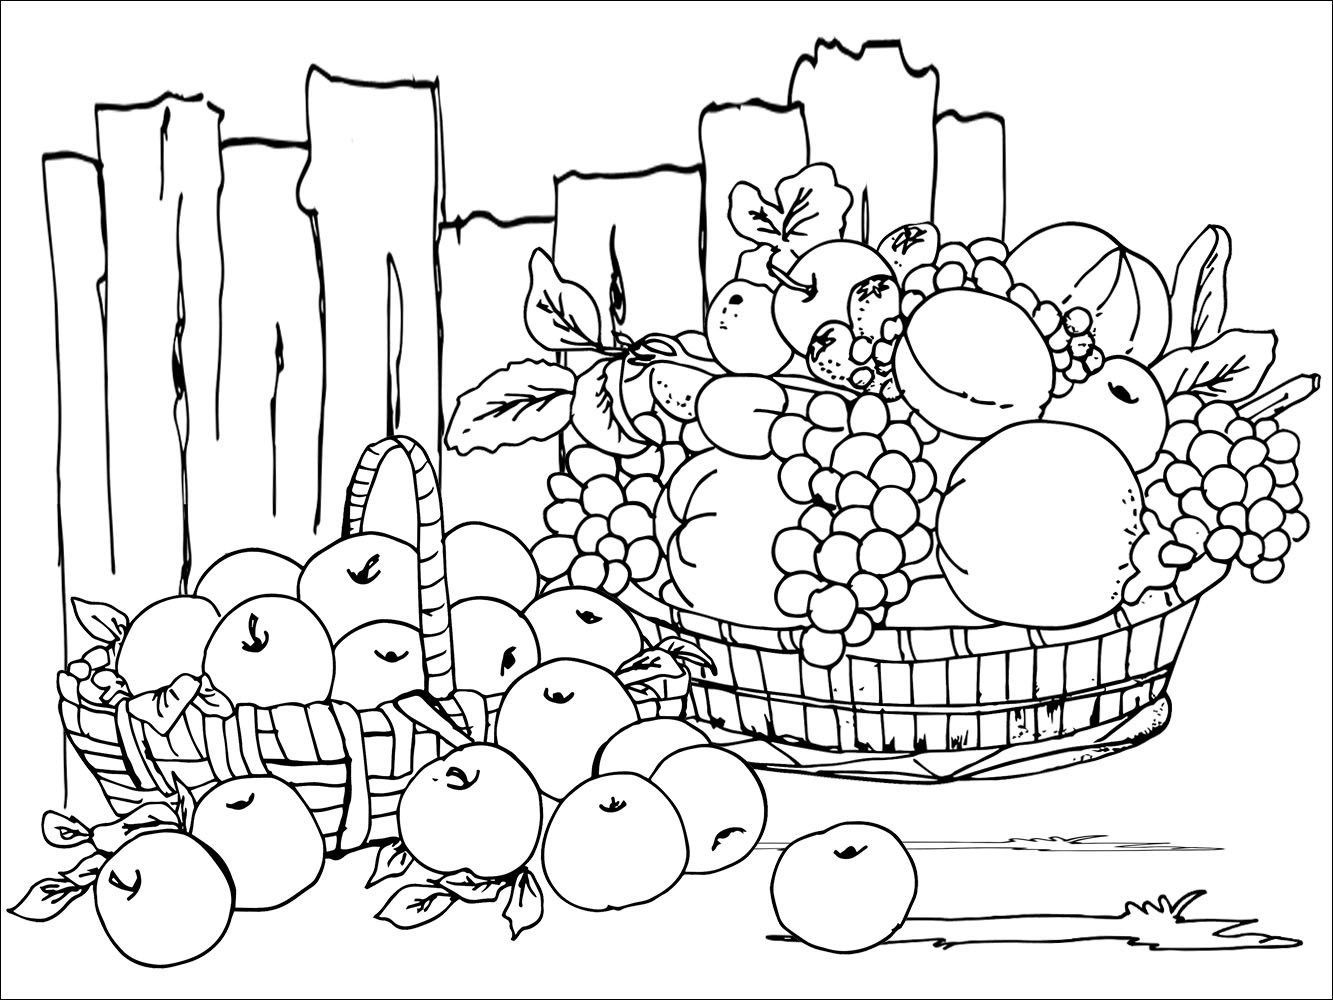 Festival Harvest Colouring Sheet